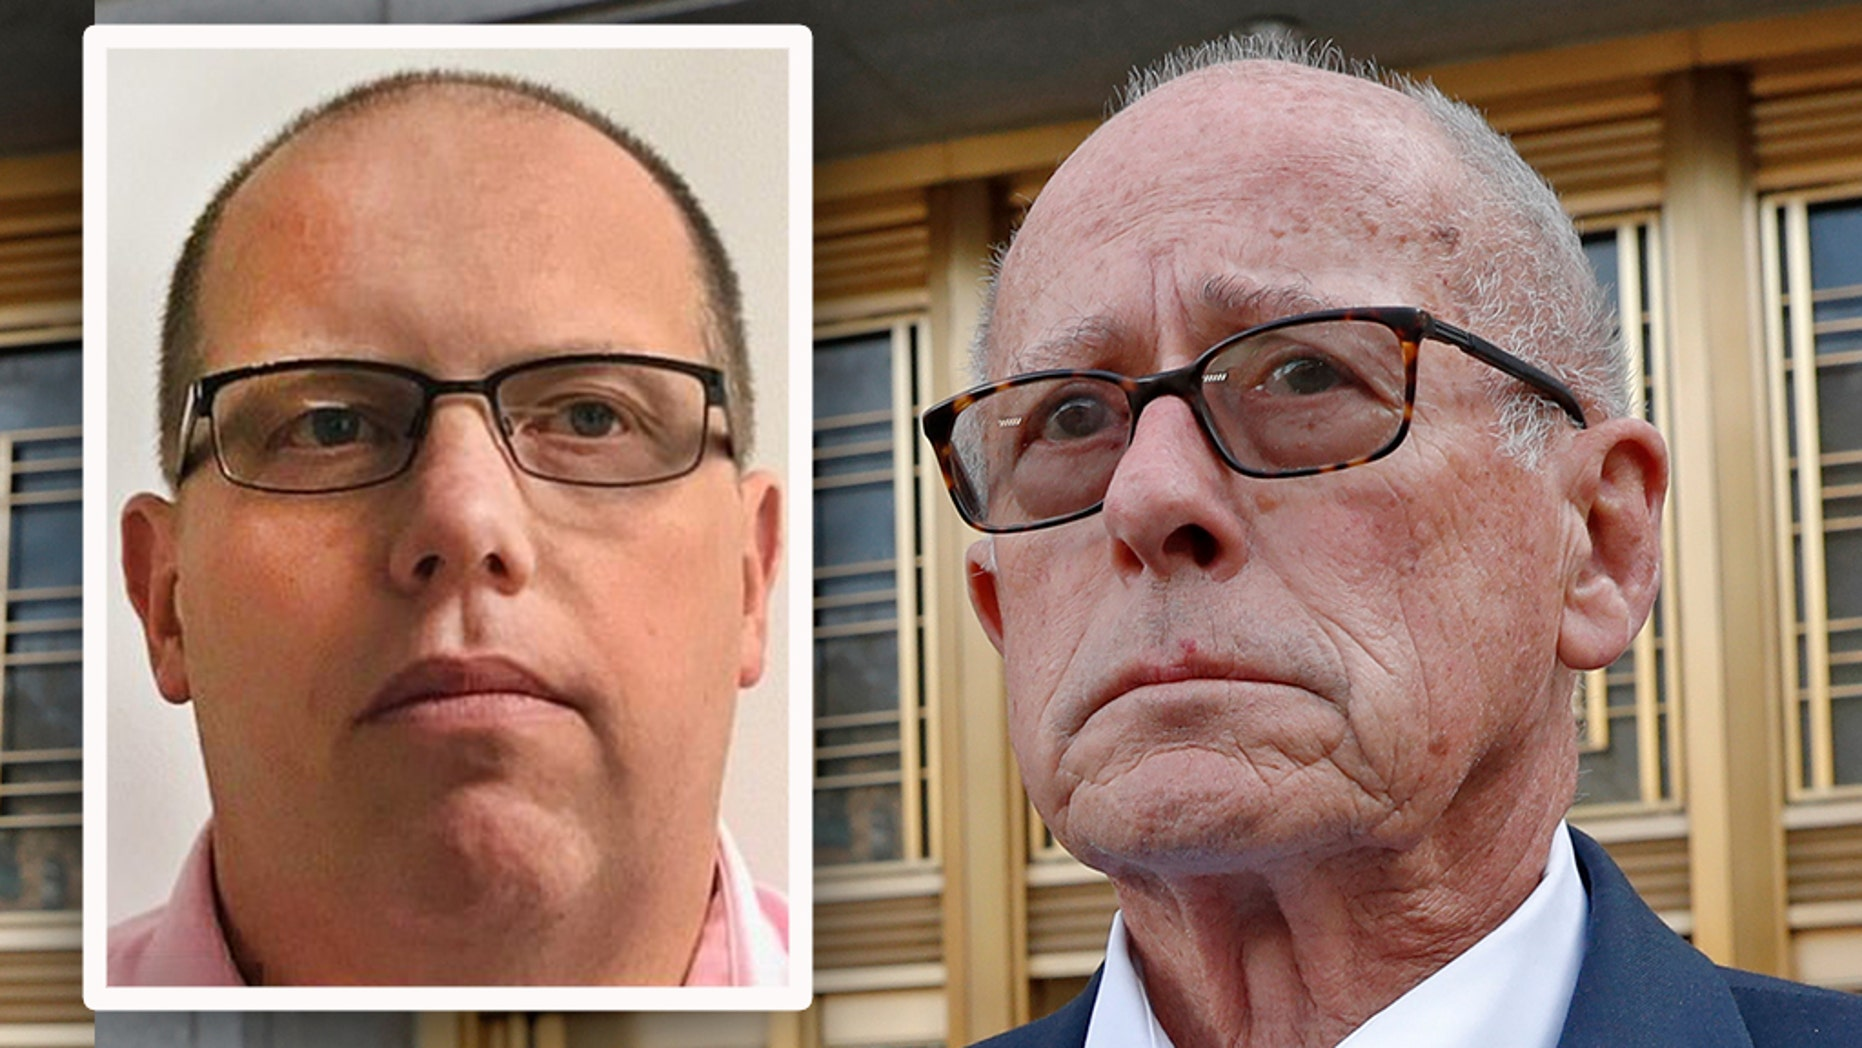 William Pietruszewski, left, the former chief compliance officer, and Laurence Doud III, right, the retired CEO of the Rochester Drug Co-Operative, were hit Tuesday with criminal charges stemming from the opioid crisis. (LinkedIn / AP)